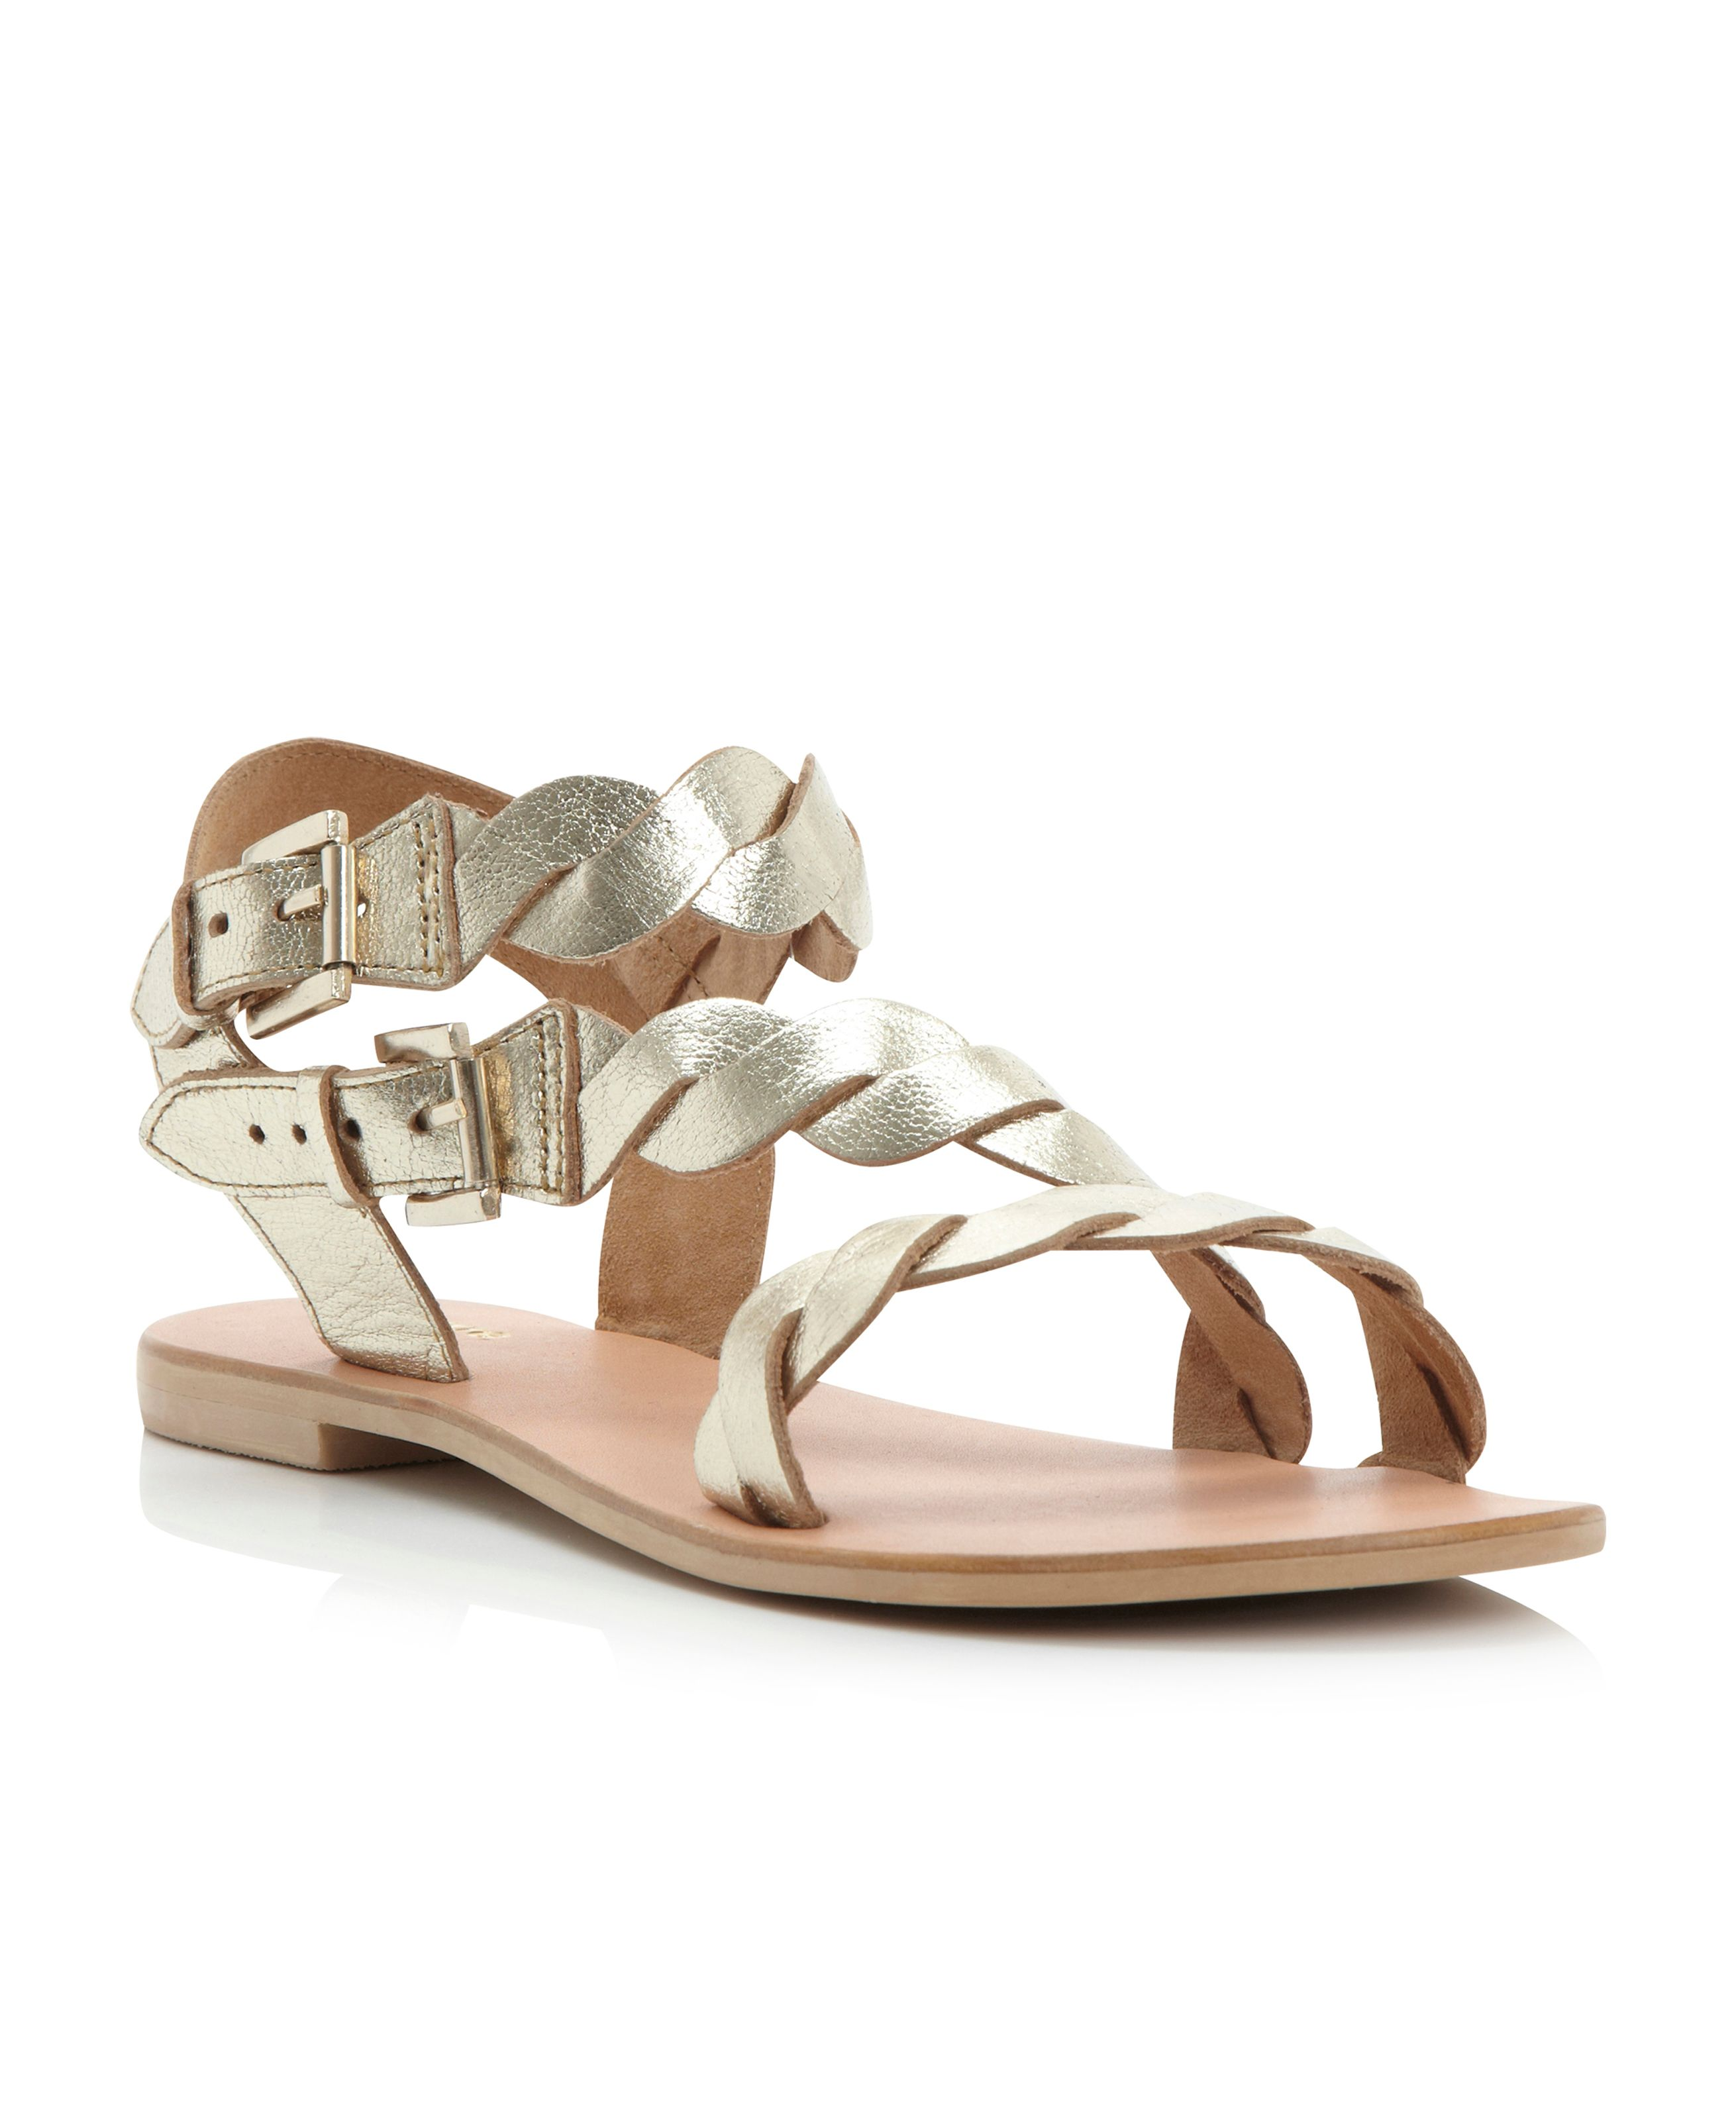 Jumpy twist strap sandals